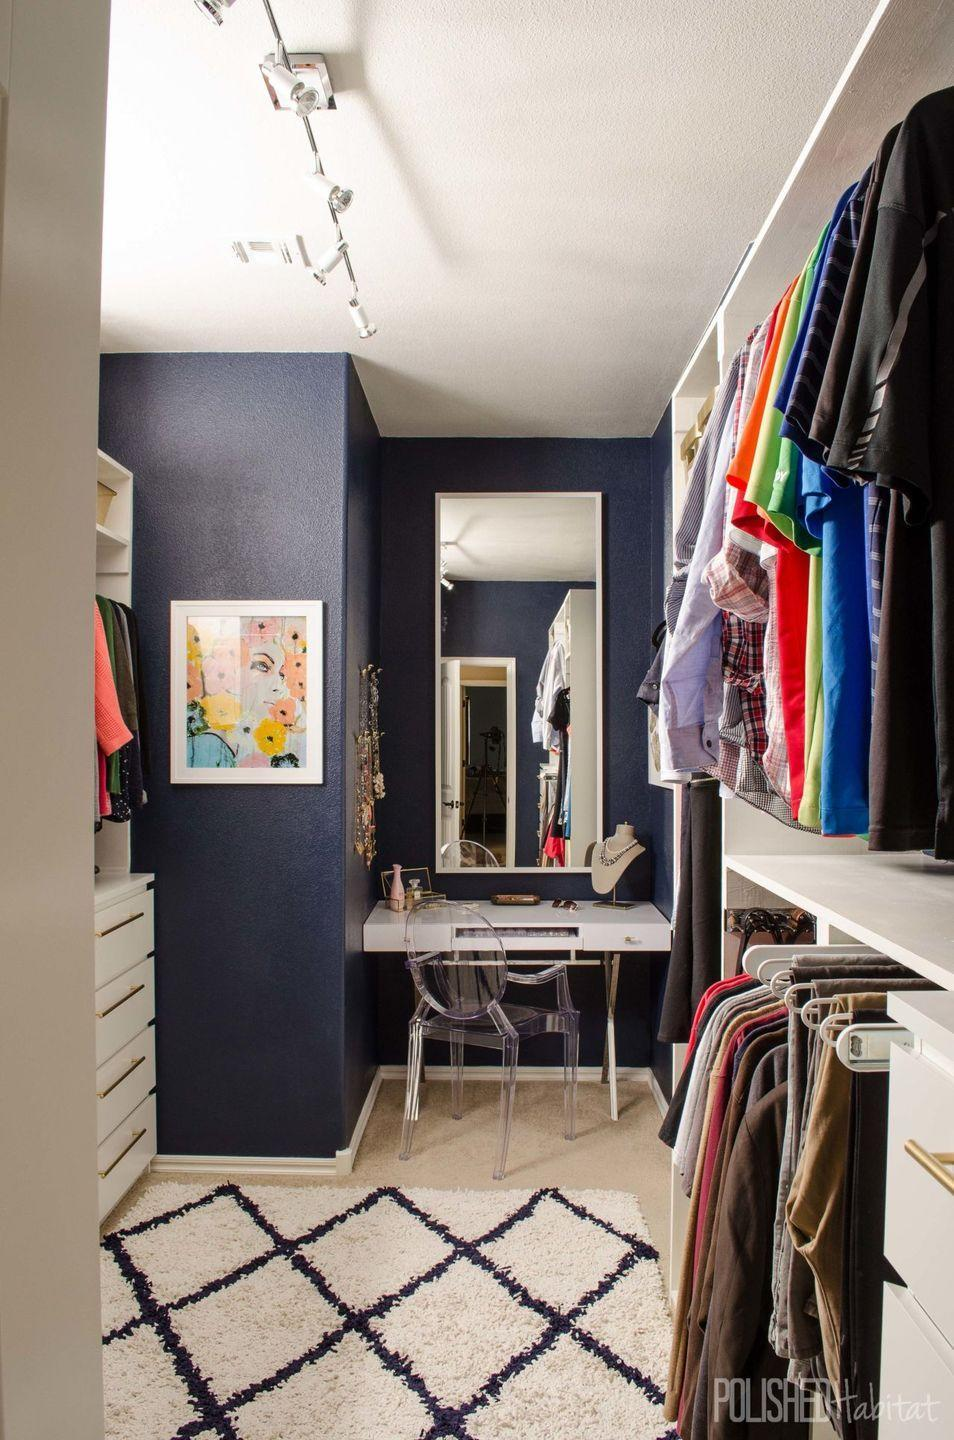 """<p>Instead of trying to make a unit tucked into a nook work, this homeowner embraced the area for her vanity and added bonus clothing storage with extra dressers.</p><p><em><a href=""""http://www.polishedhabitat.com/2015/master-closet-organization/"""" rel=""""nofollow noopener"""" target=""""_blank"""" data-ylk=""""slk:See more at Polished Habitat »"""" class=""""link rapid-noclick-resp"""">See more at Polished Habitat »</a></em></p><p><strong>What you'll need: </strong><span class=""""redactor-invisible-space"""">closet storage system, $124, <a href=""""https://www.amazon.com/ClosetMaid-22875-ShelfTrack-Adjustable-Organizer/dp/B0026SRX5Y/?tag=syn-yahoo-20&ascsubtag=%5Bartid%7C10072.g.36006557%5Bsrc%7Cyahoo-us"""" rel=""""nofollow noopener"""" target=""""_blank"""" data-ylk=""""slk:amazon.com"""" class=""""link rapid-noclick-resp"""">amazon.com</a></span><br></p>"""